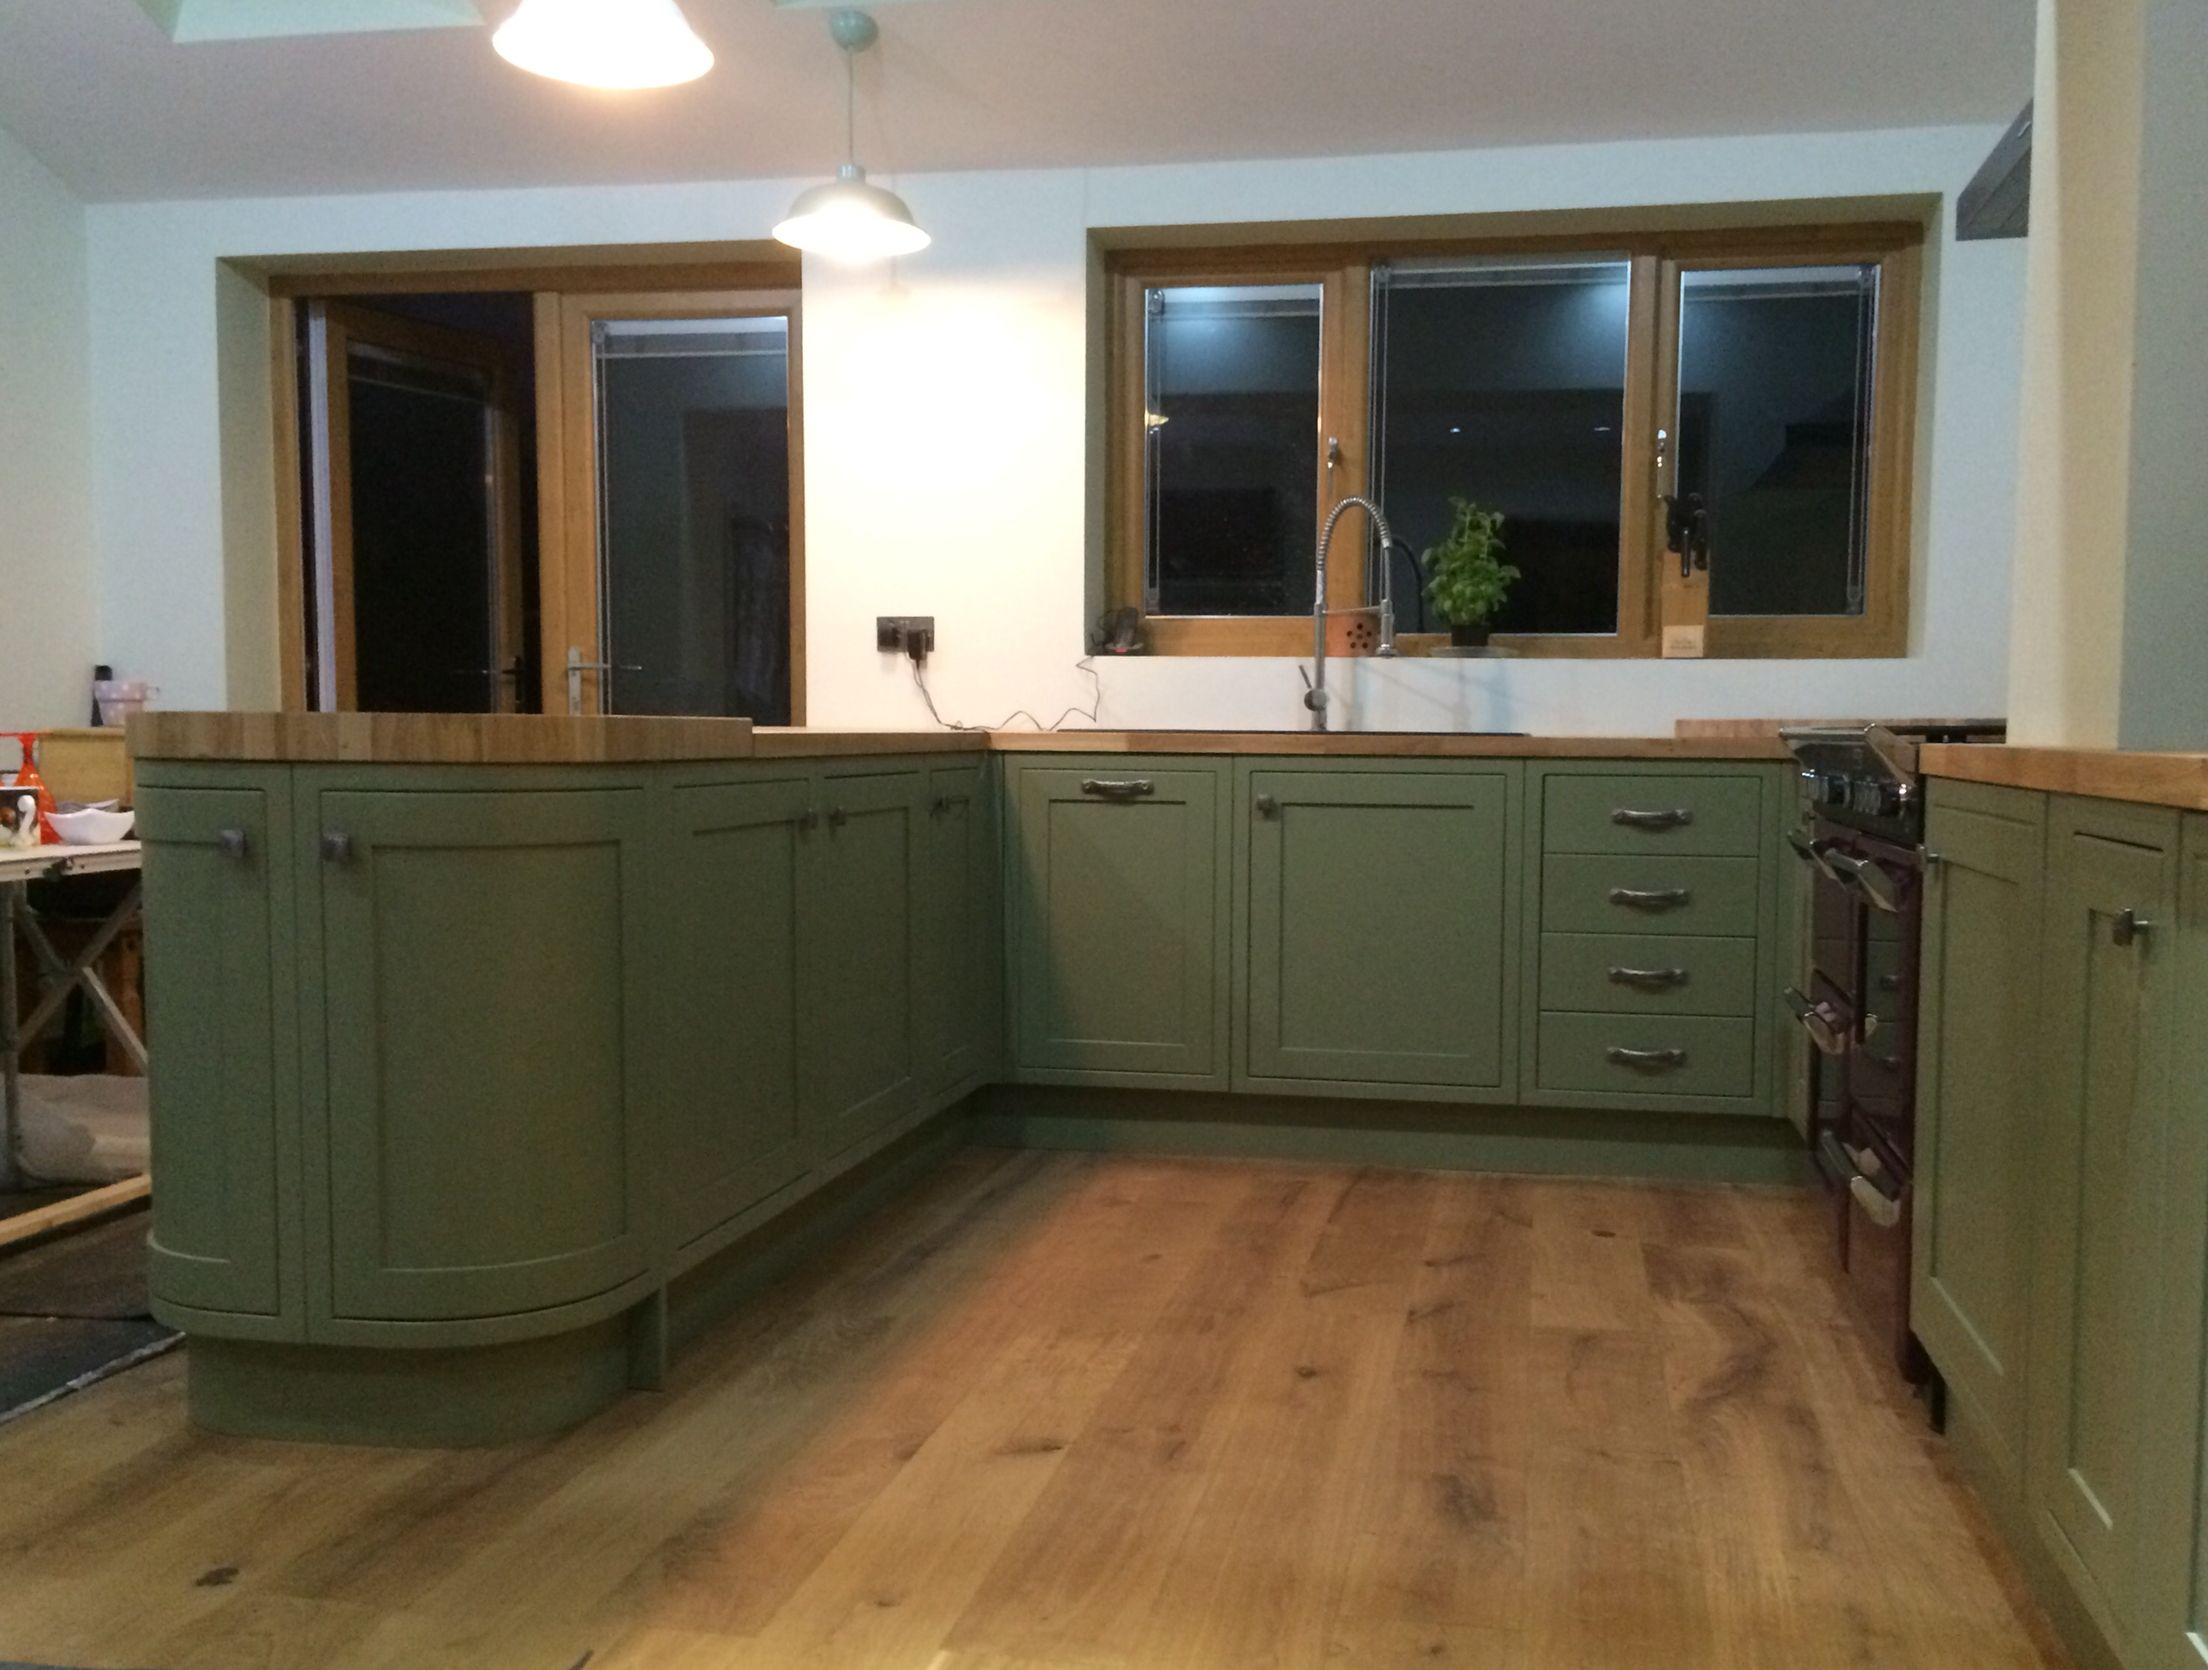 Best Bespoke Painted Kitchen In Olive Farrow Ball Olive 400 x 300